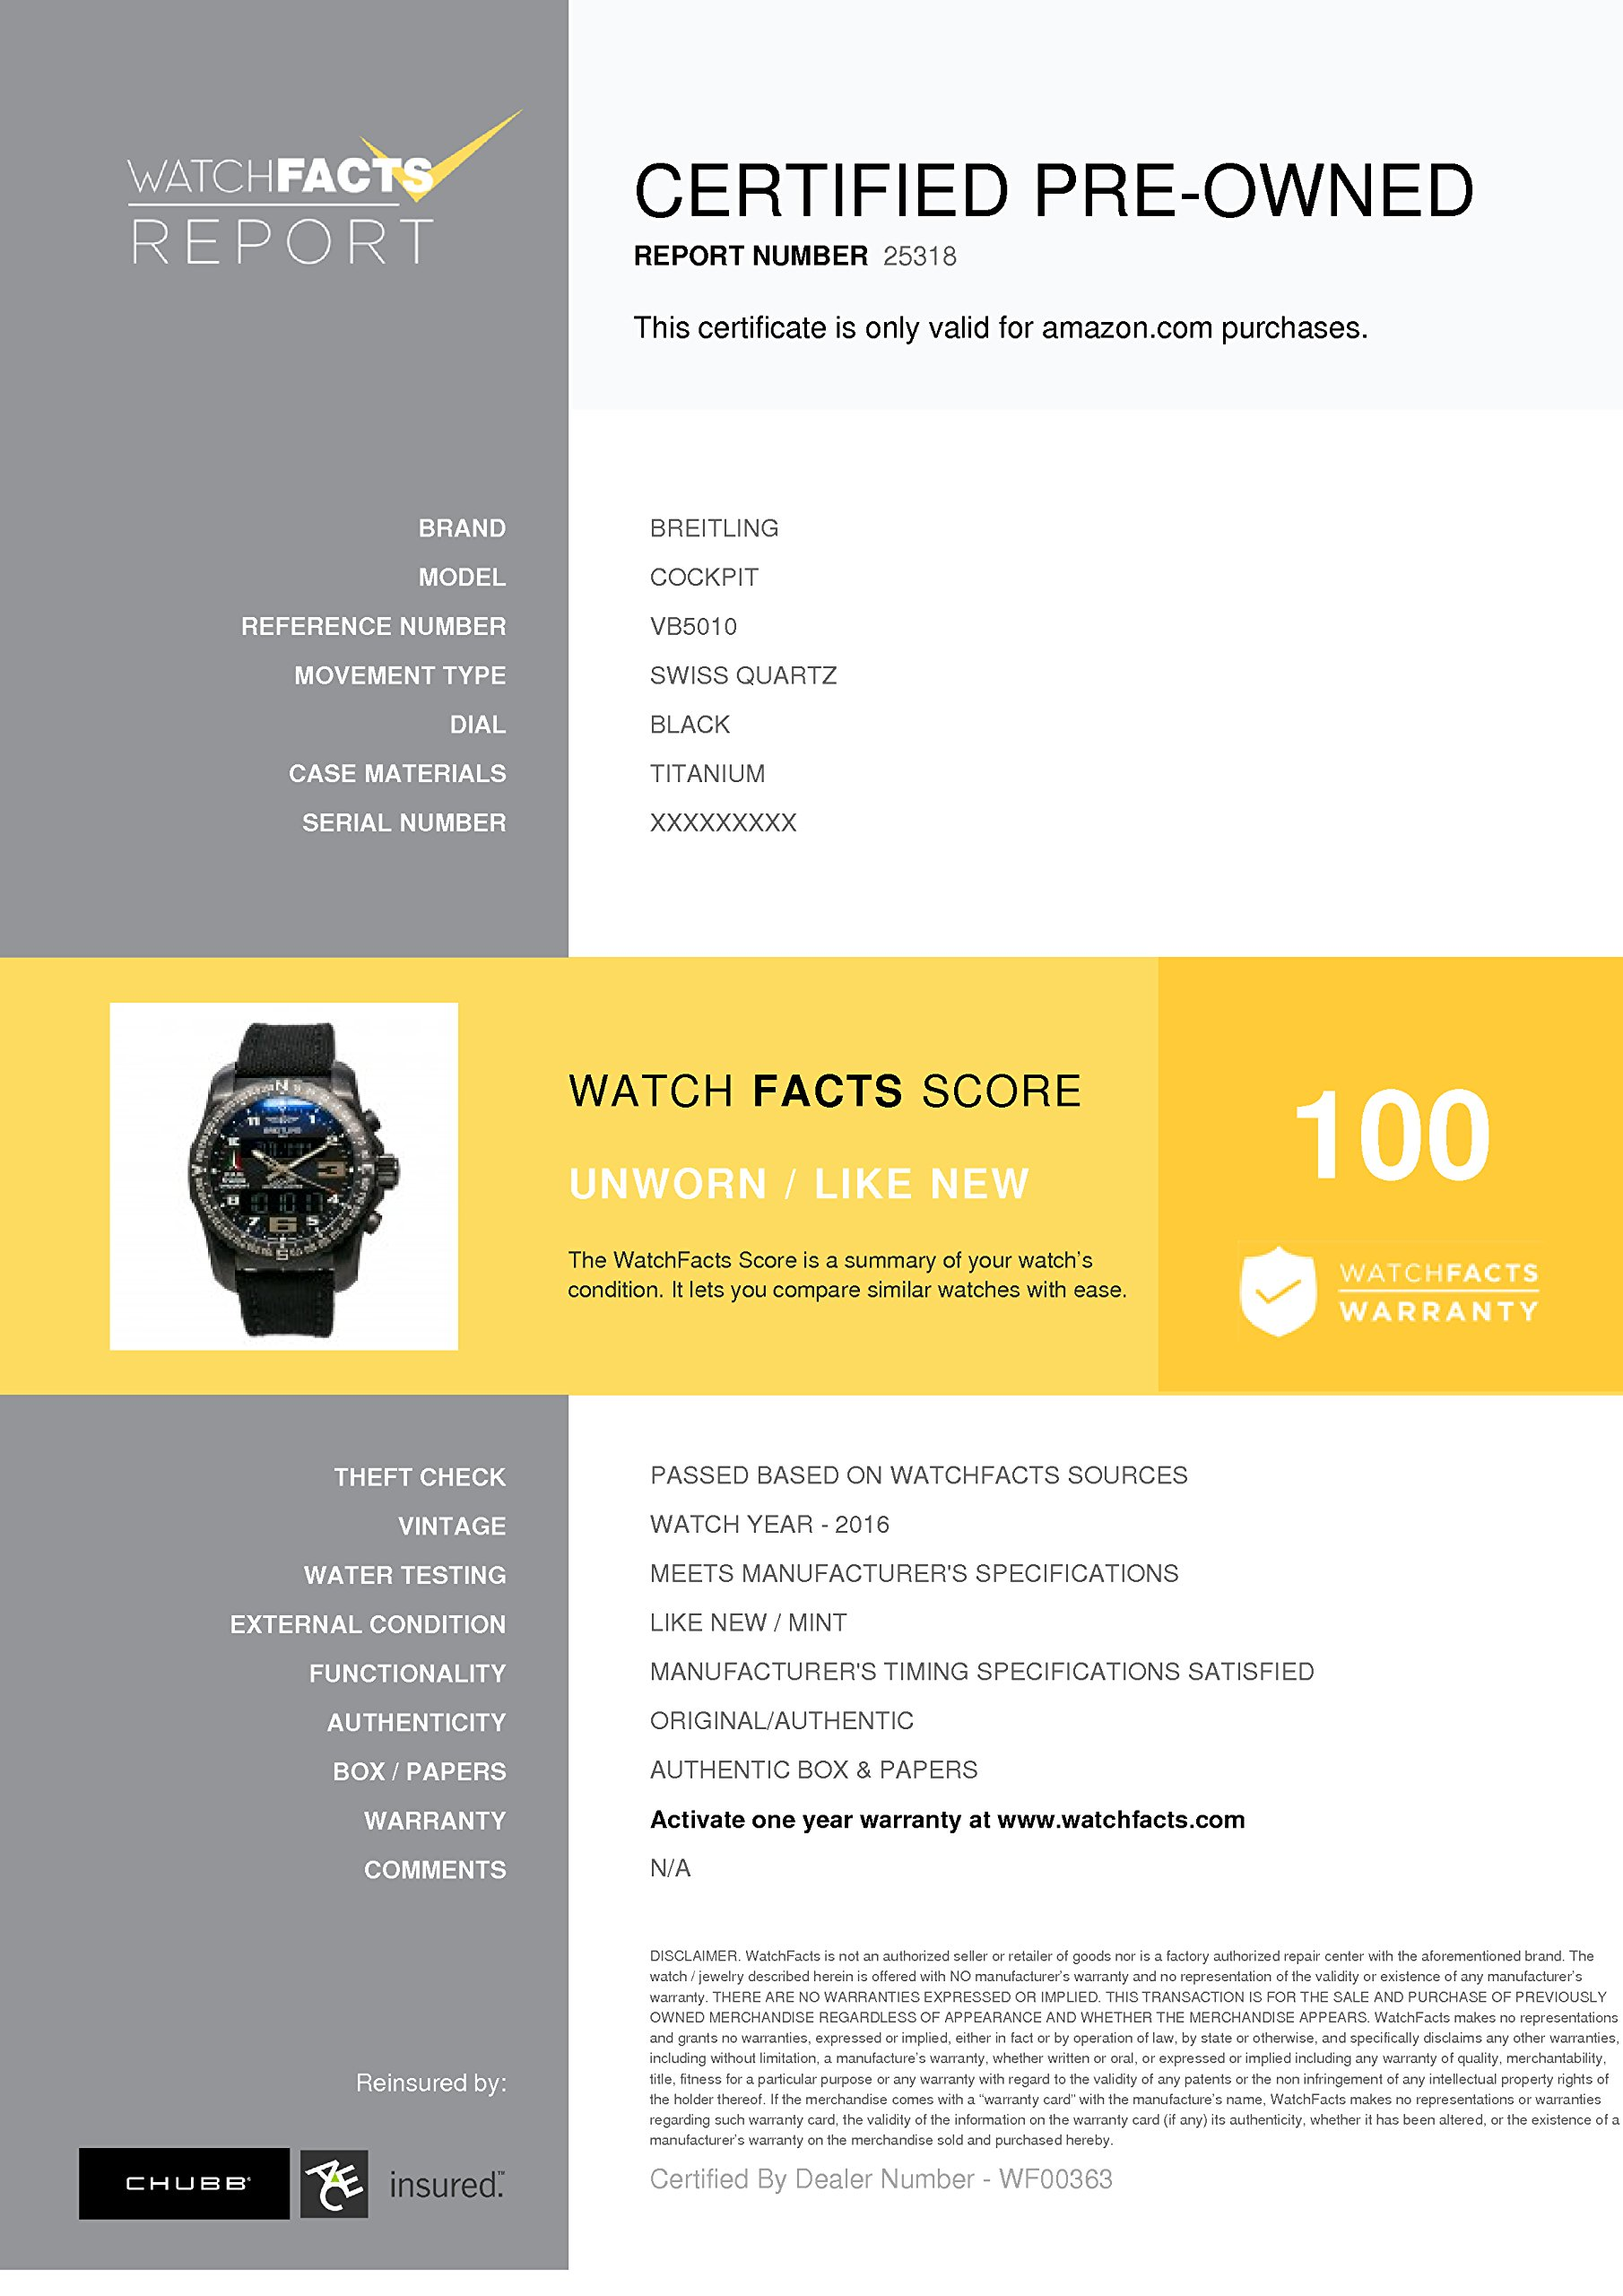 Breitling Cockpit swiss-quartz mens Watch VB5010 (Certified Pre-owned) by Breitling (Image #6)